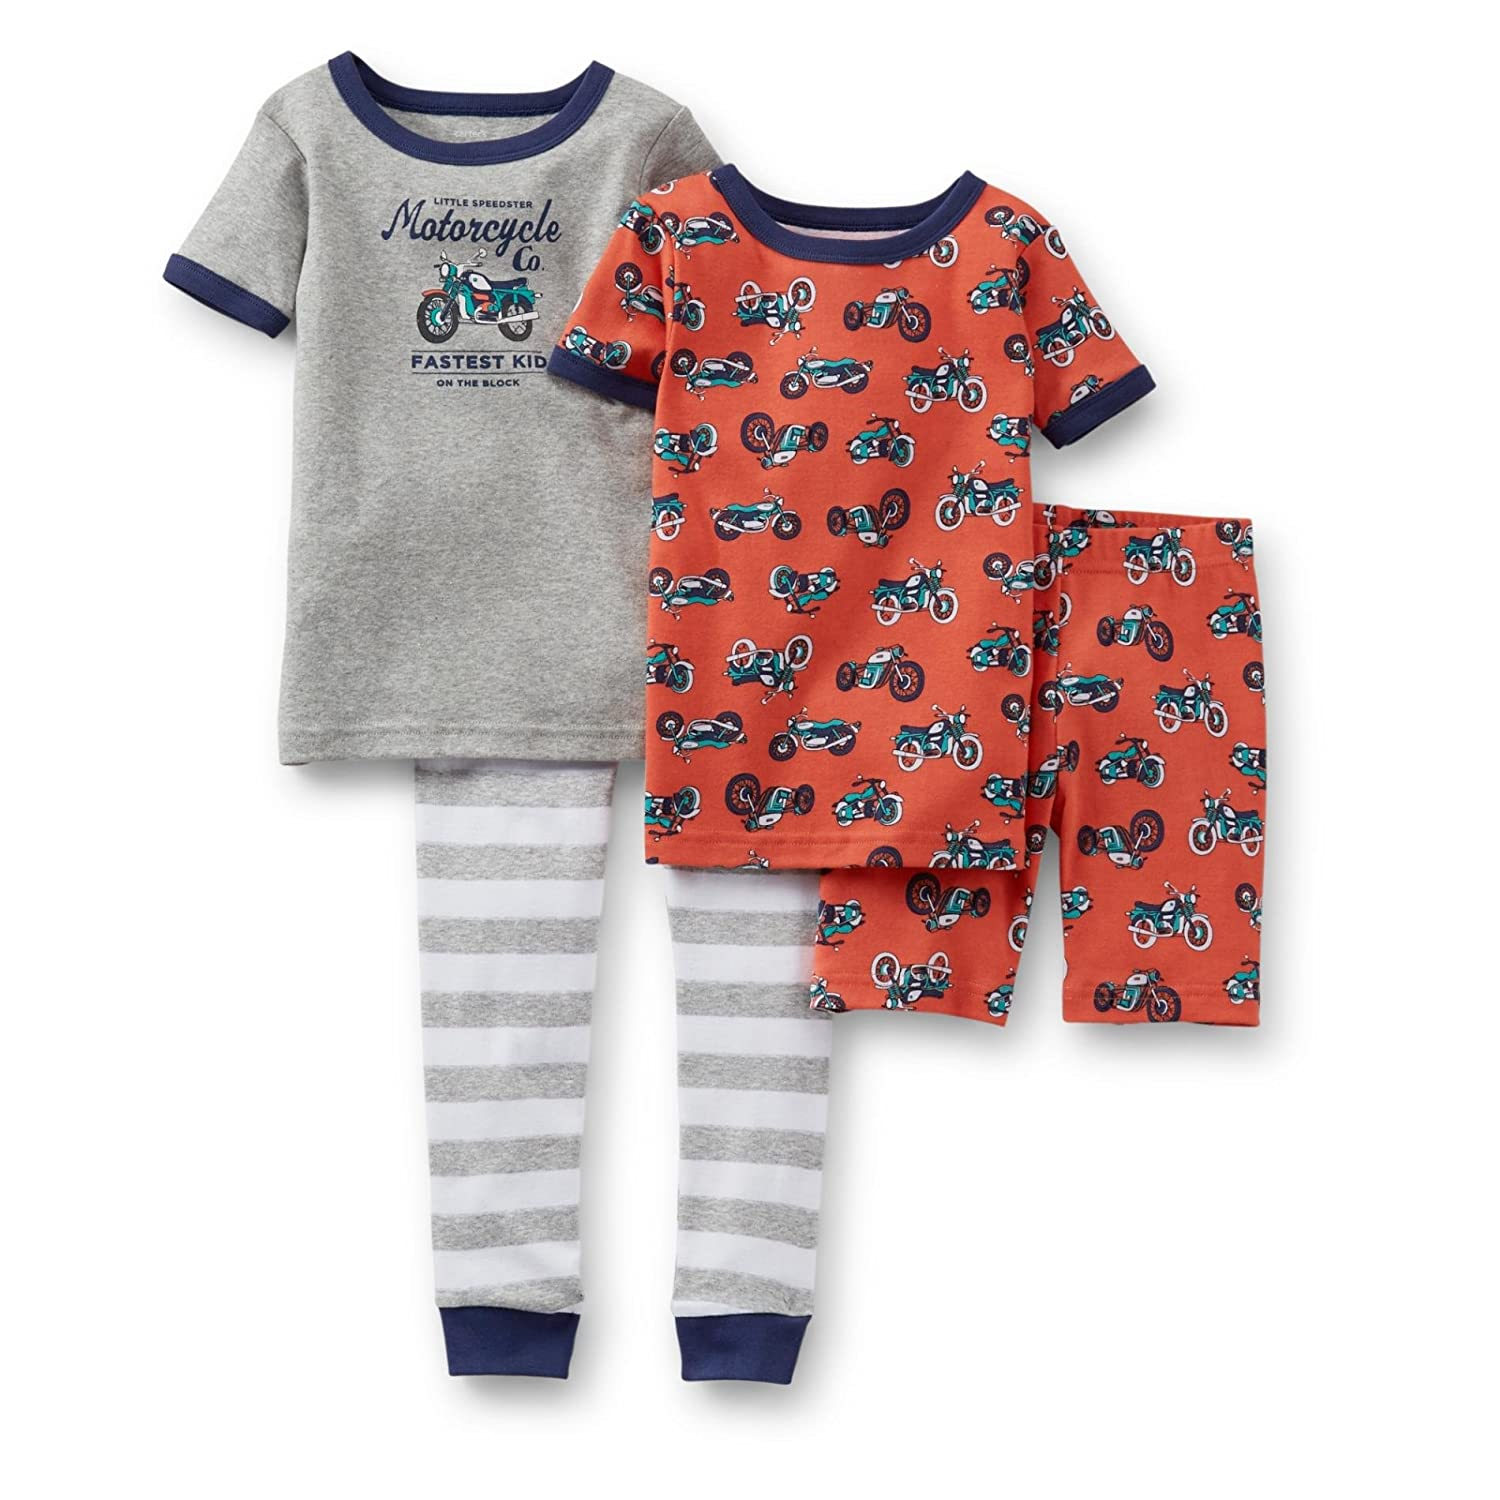 Carters Baby Boys Cotton 4 Piece Motorcycle Pajama Set